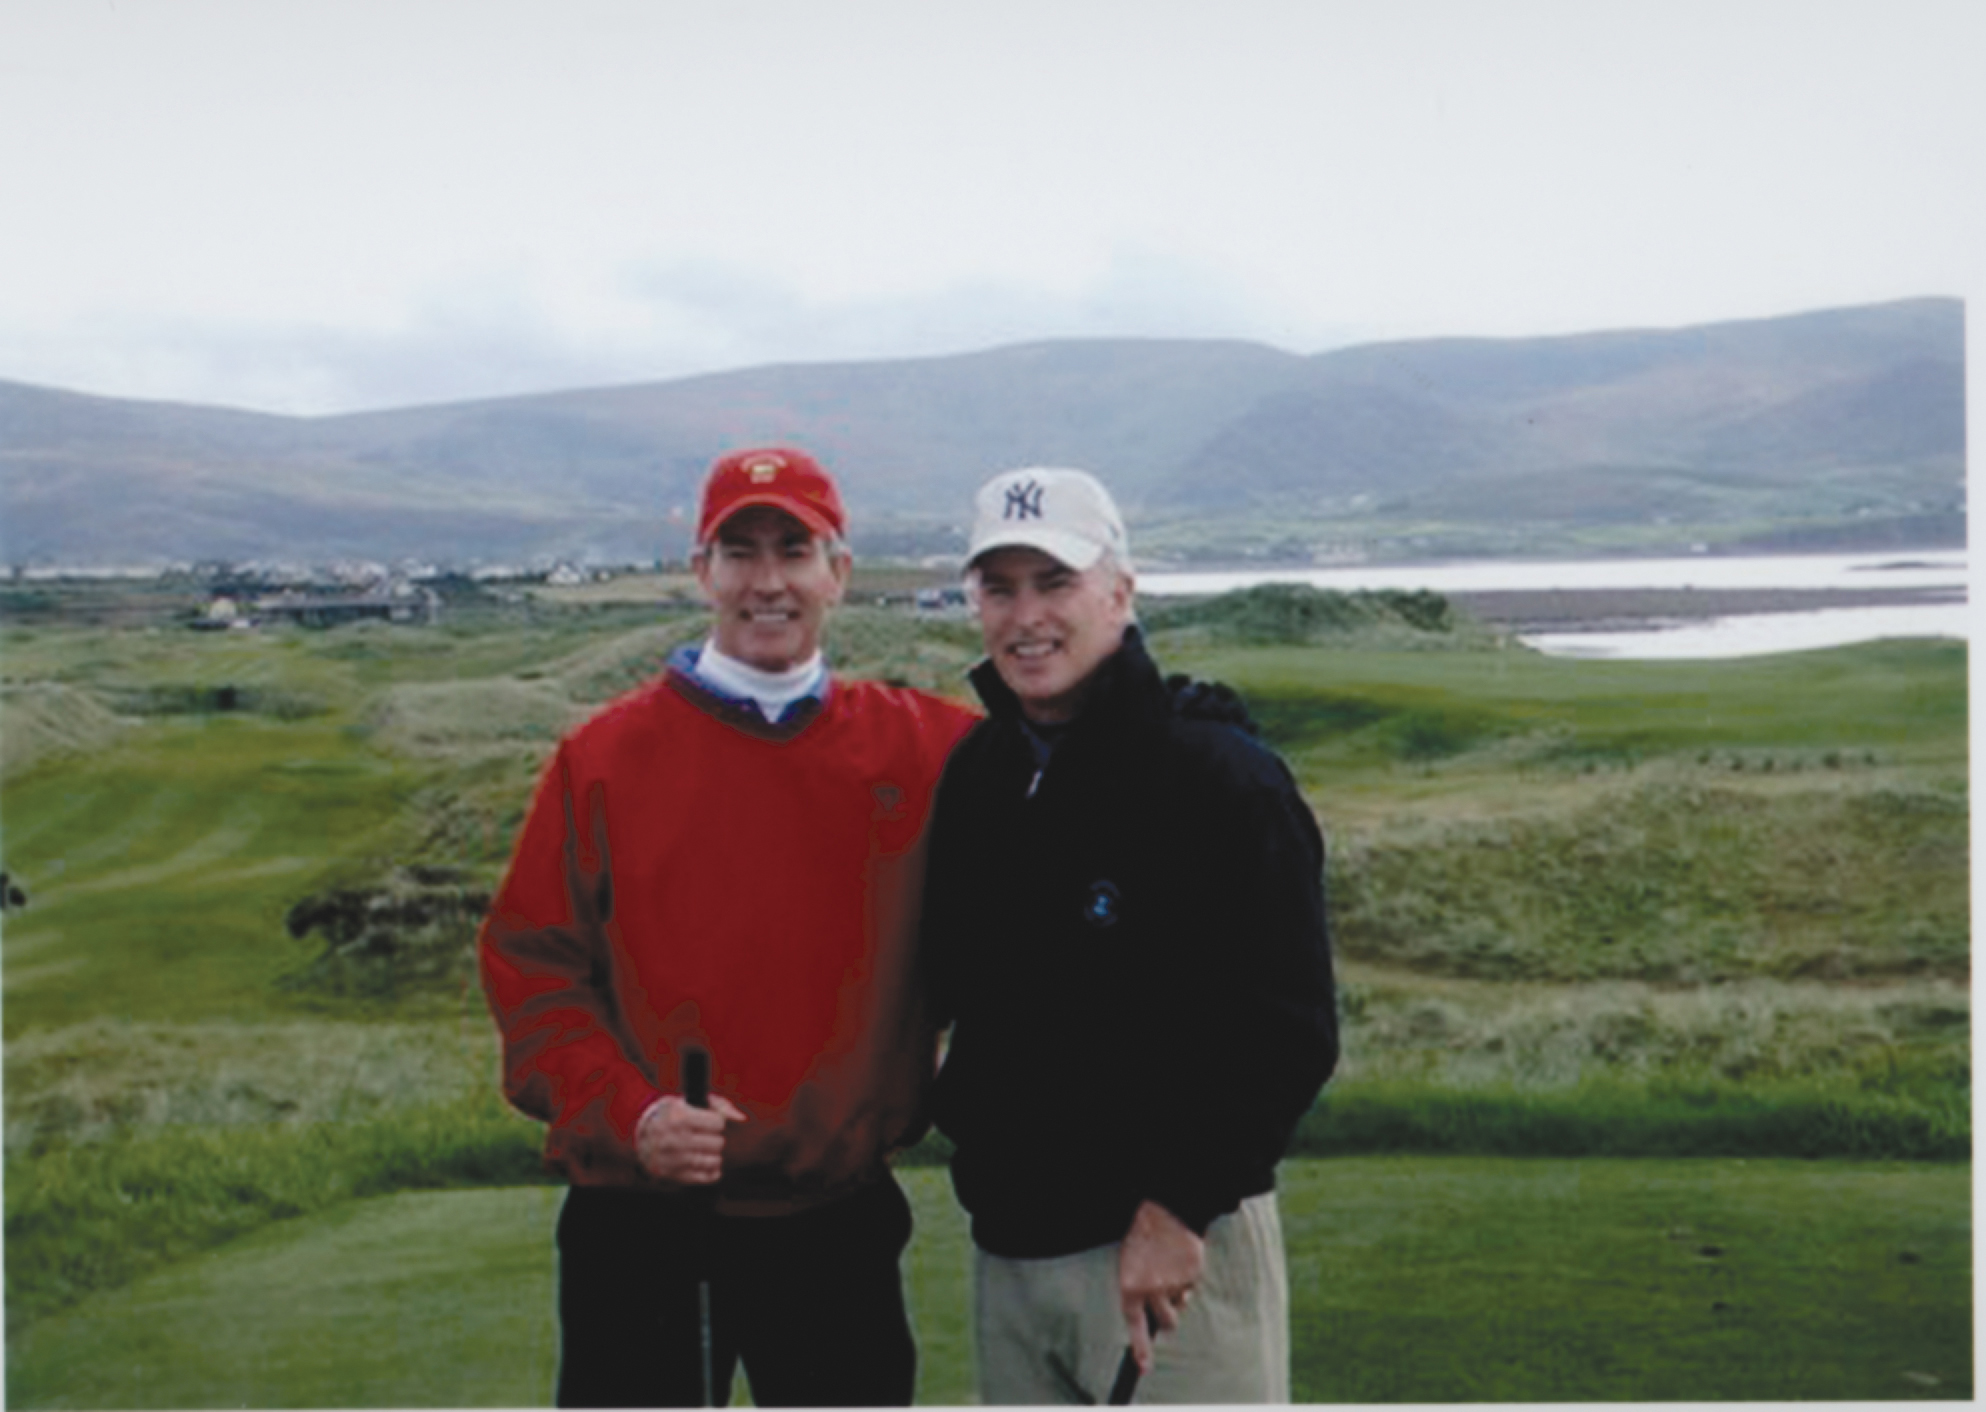 Bob (right) and Brian (left) McCann, his brother, at Waterville Golf Links in Ireland. (Photo courtesy Bob McCann)